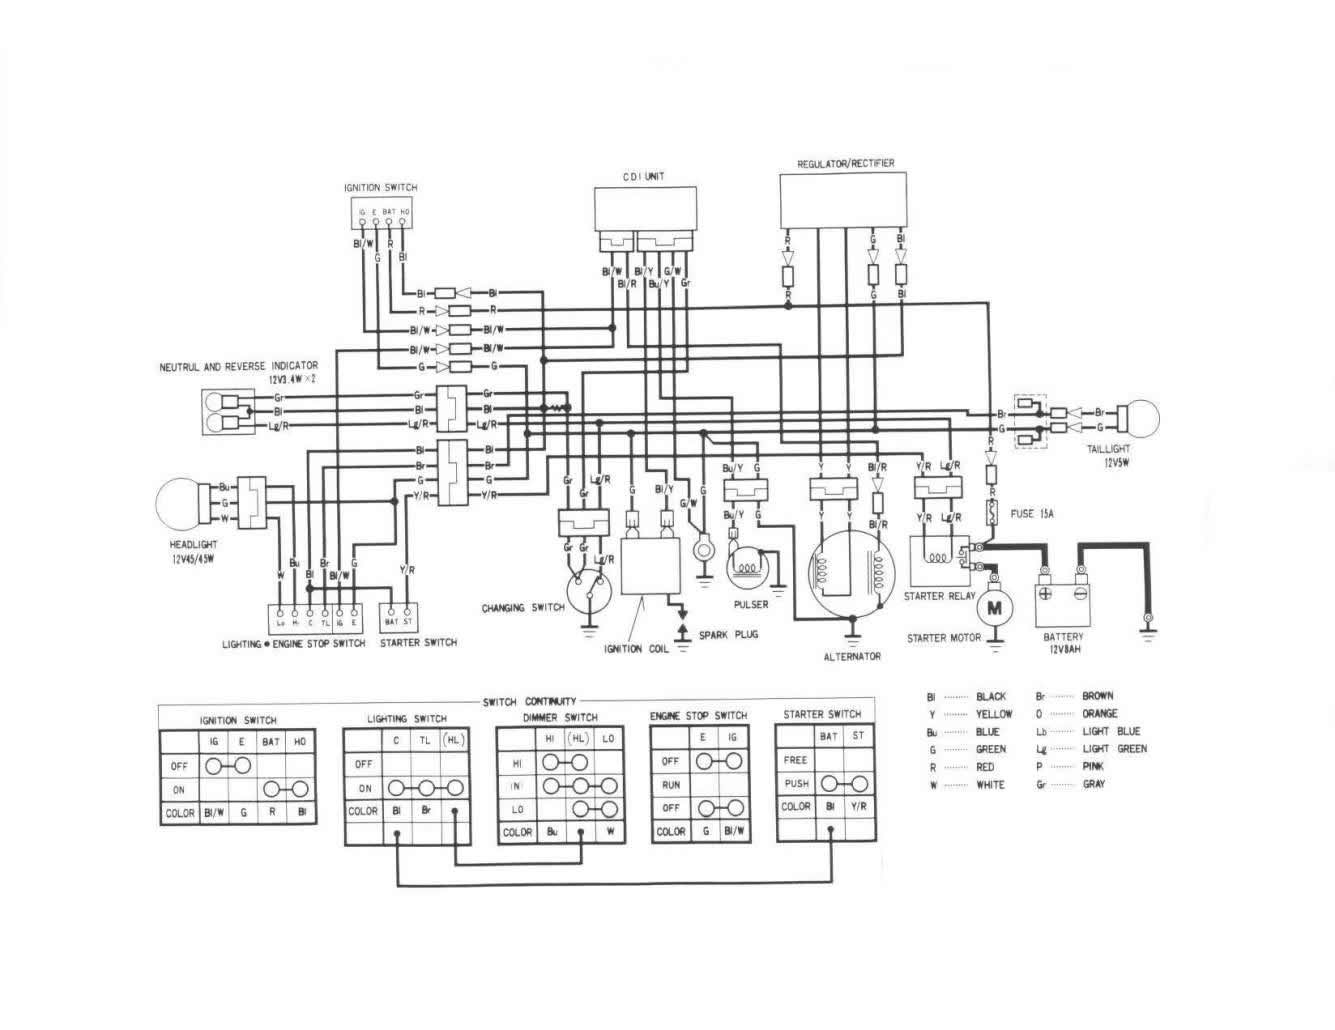 Kymco Super 8 Wiring Diagram. Engine. Wiring Diagram Images